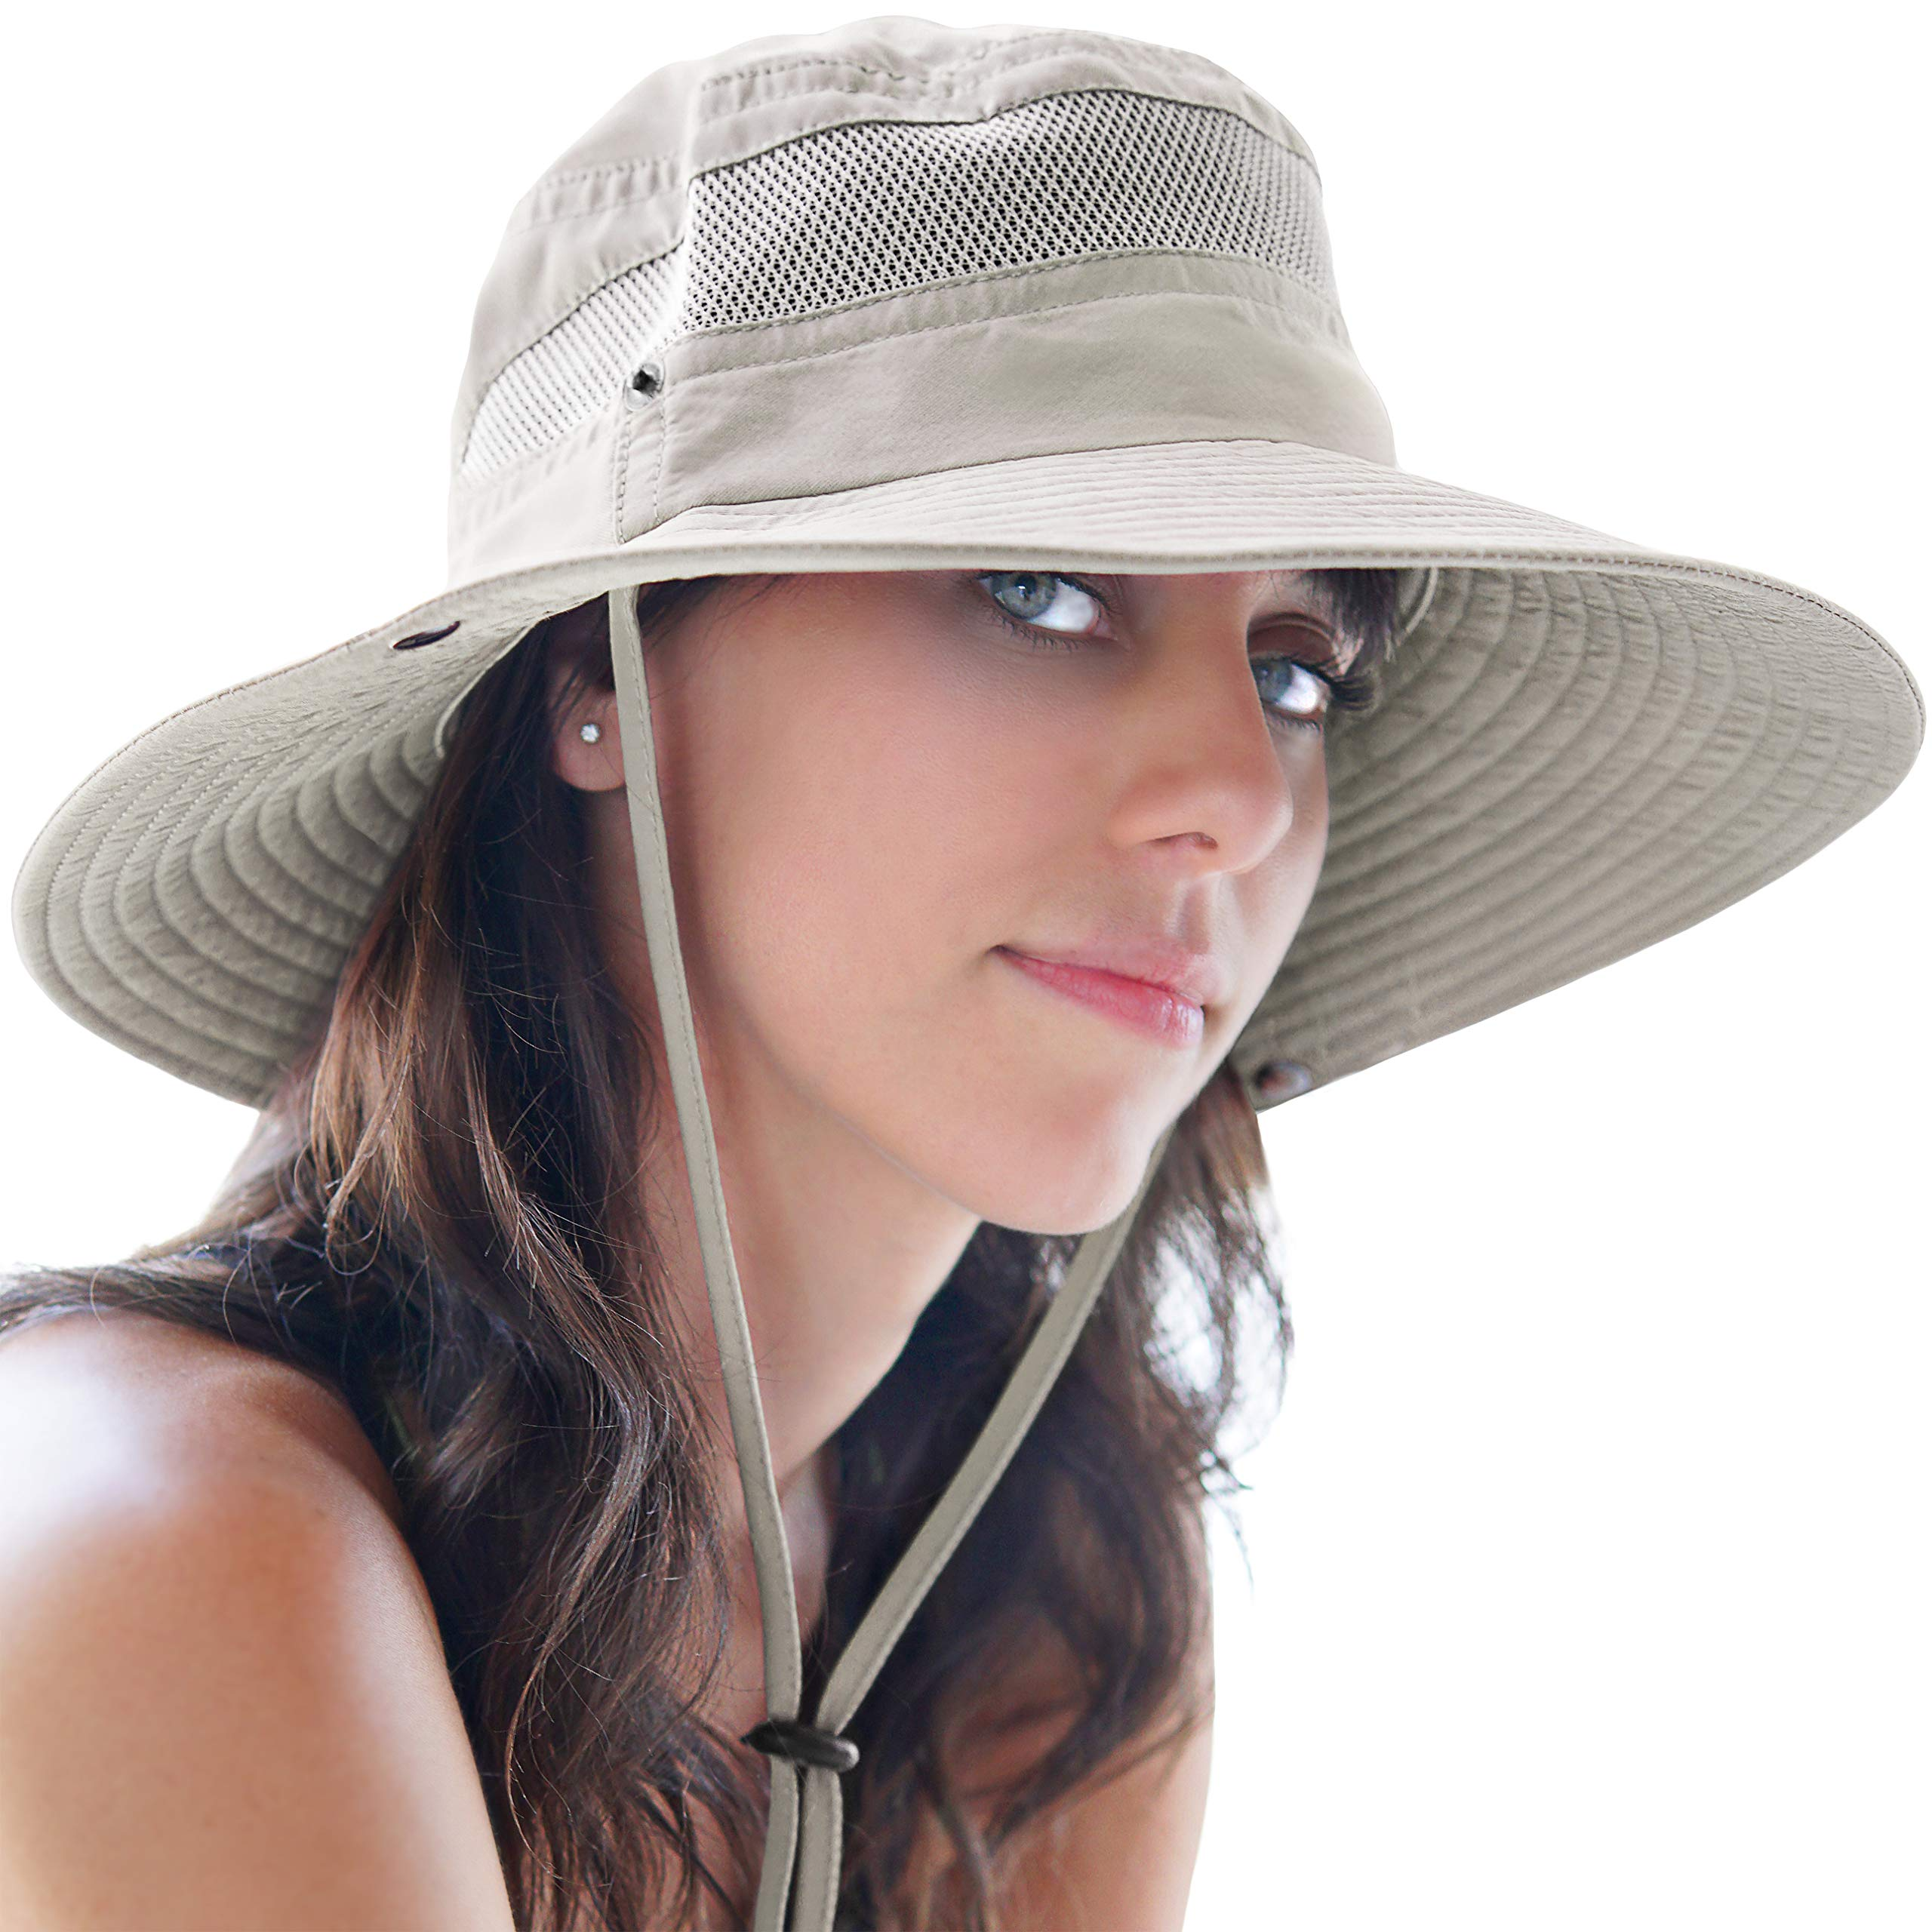 GearTOP Sun Hats for Women and Men | This Summer Cap is Your Best Choice for Sun Protection (Beige Fishing Hat) by GearTOP (Image #1)